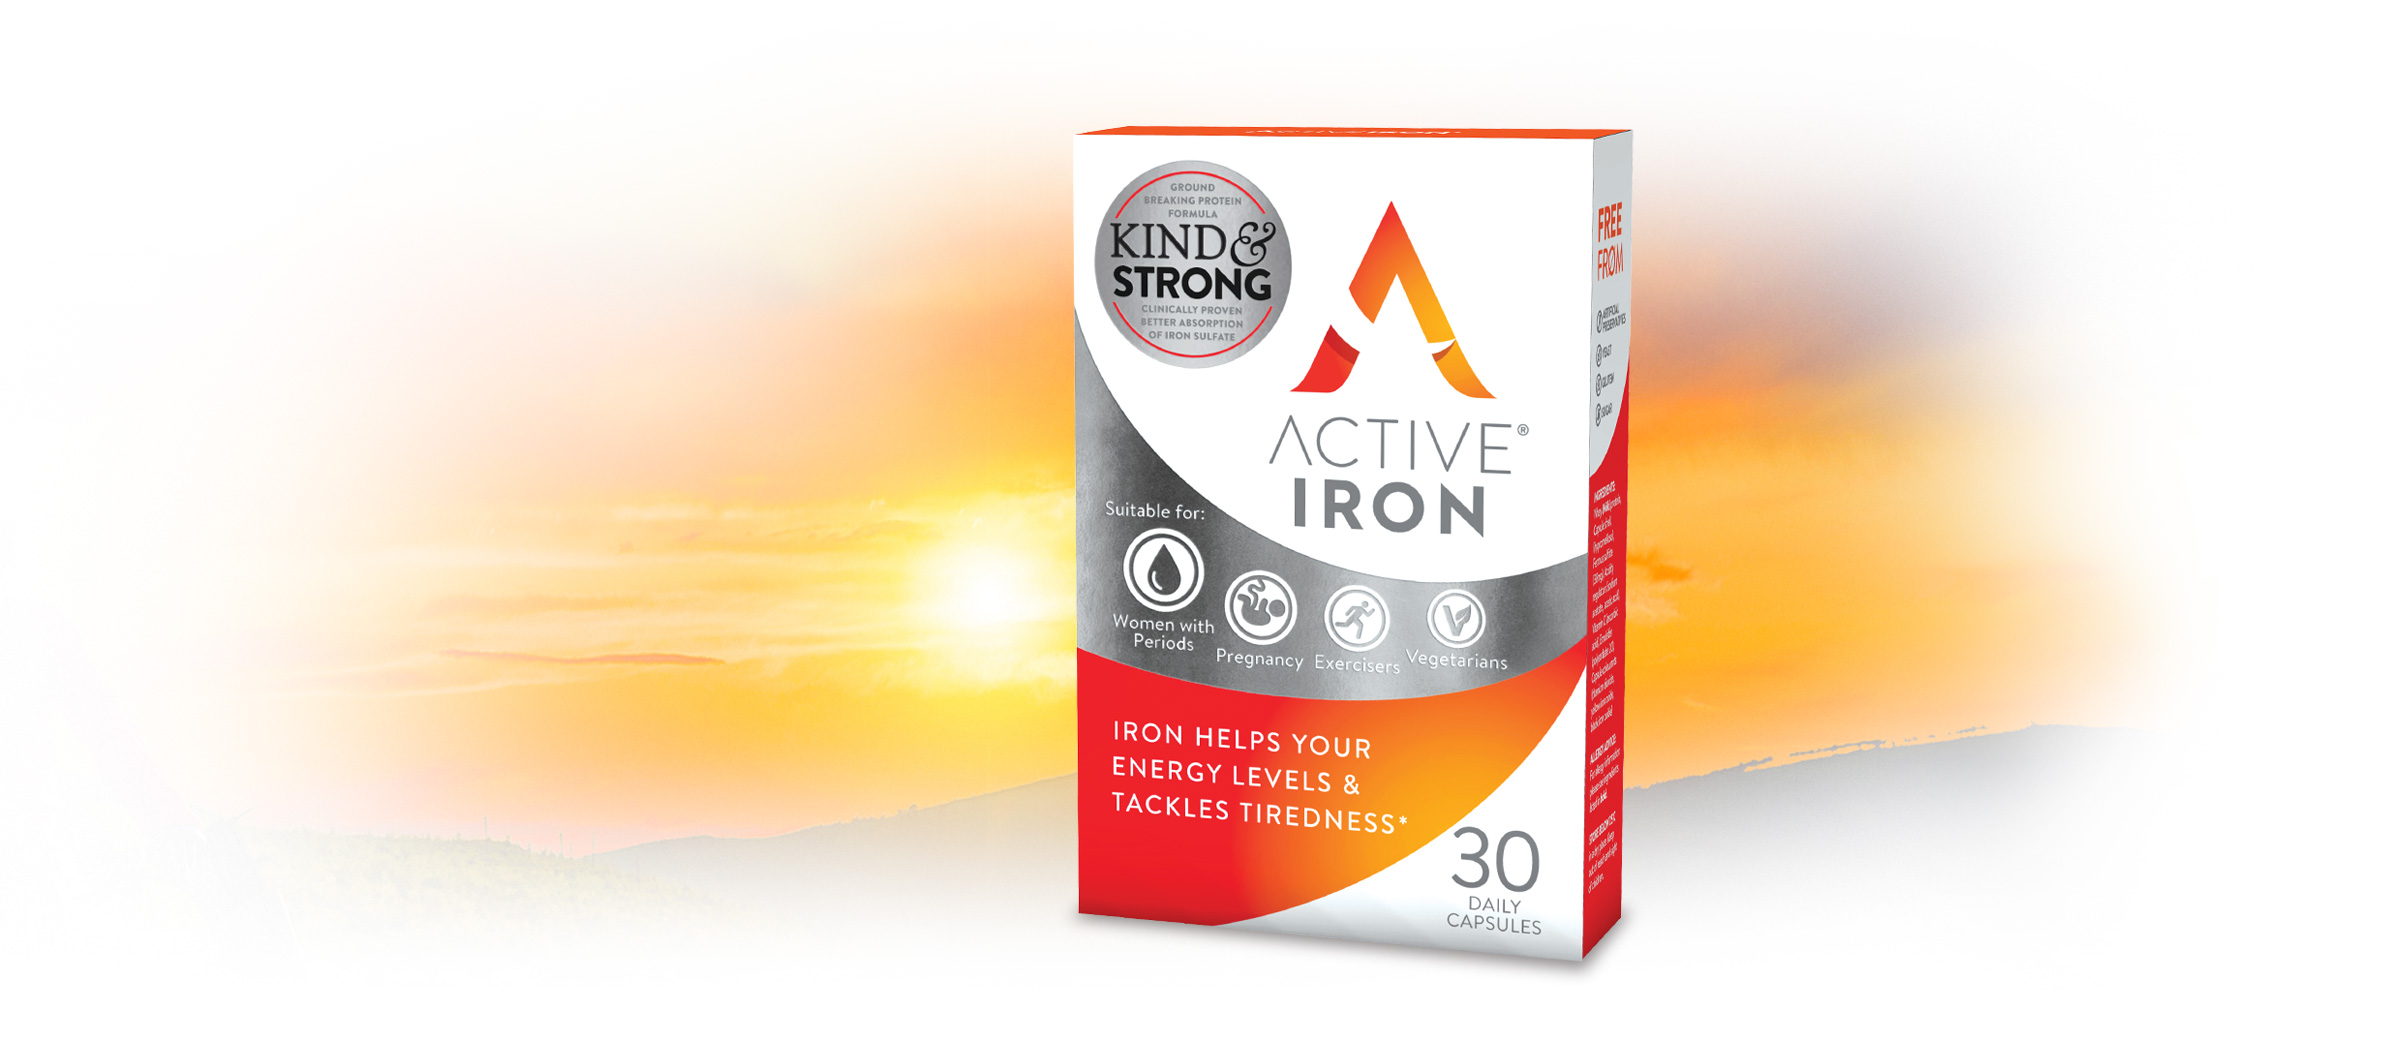 ActiveIron Pack